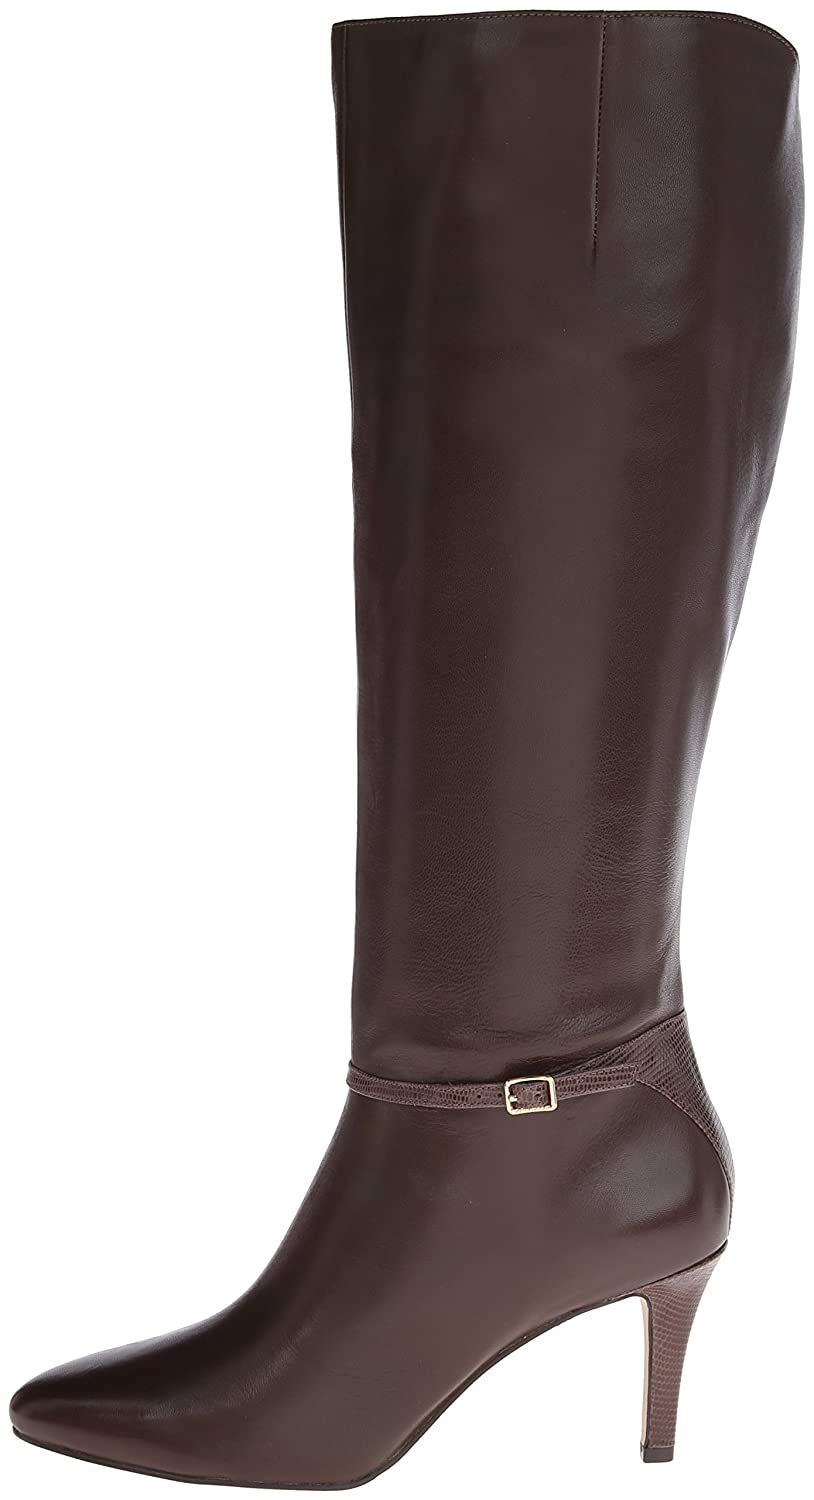 Amazon.com | Cole Haan Women's Garner Boot (wide calf), Chestnut, 8 B US |  Knee-High